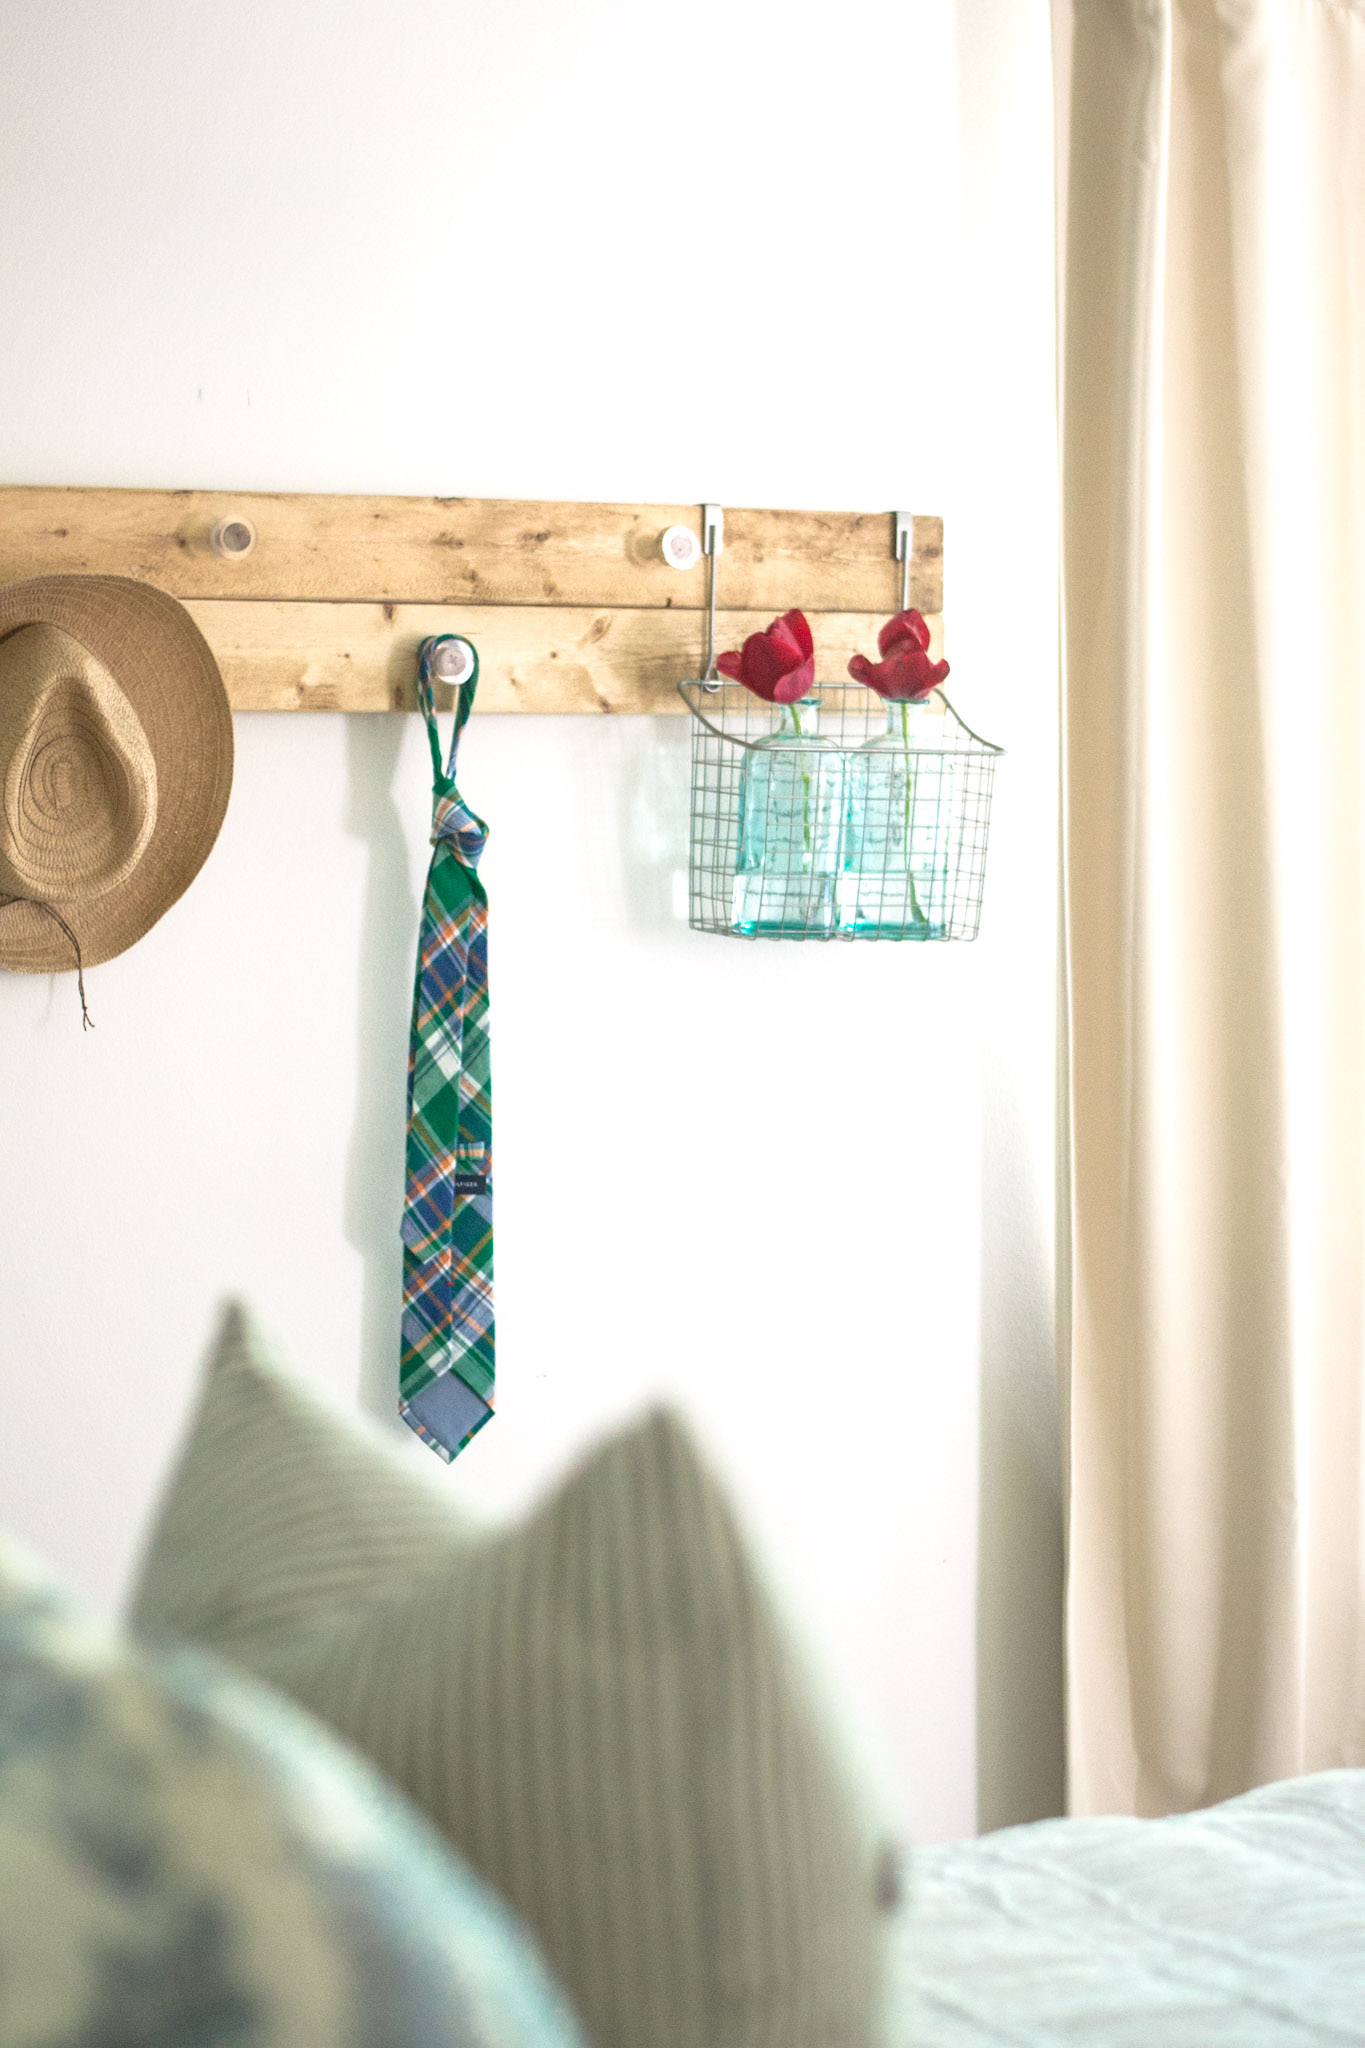 DIY Wall Rack for bedroom. Easy way to keep clutter off the floor and dresser!